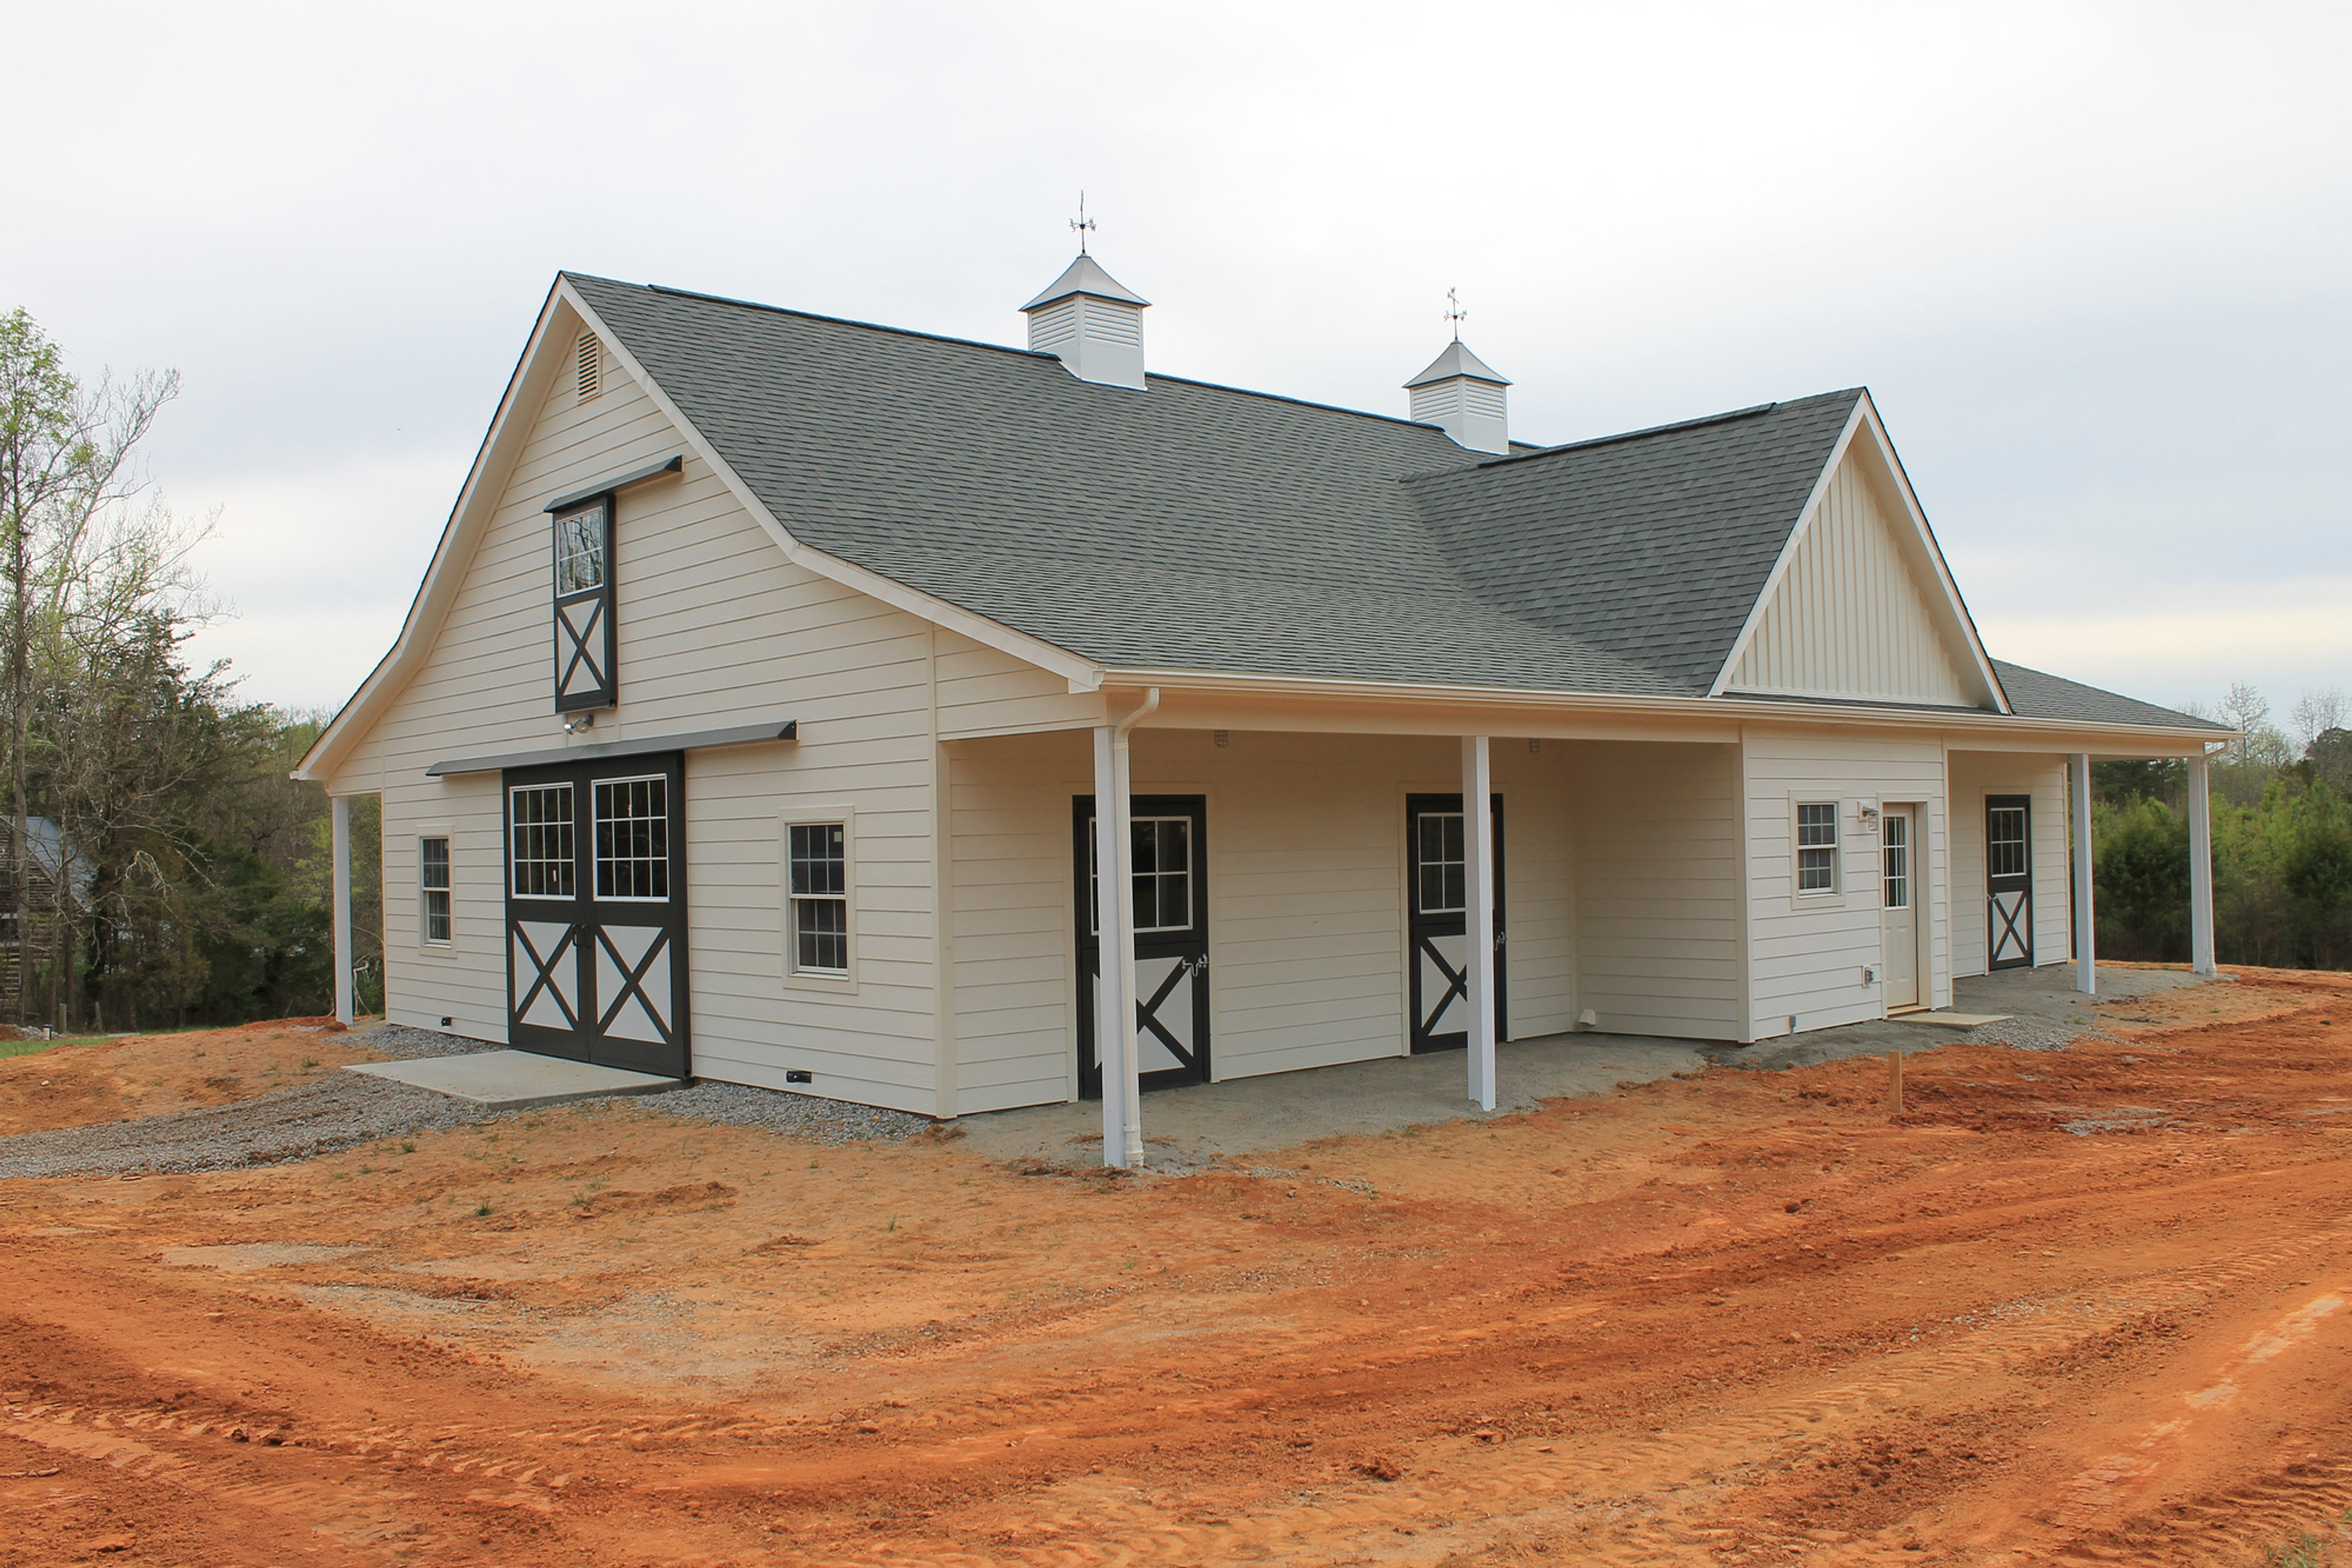 Hardi Plank Siding >> Virginia Barn Company: Pole Barn Builder, VA | Horse Barn, Charlotte Crt House, VA